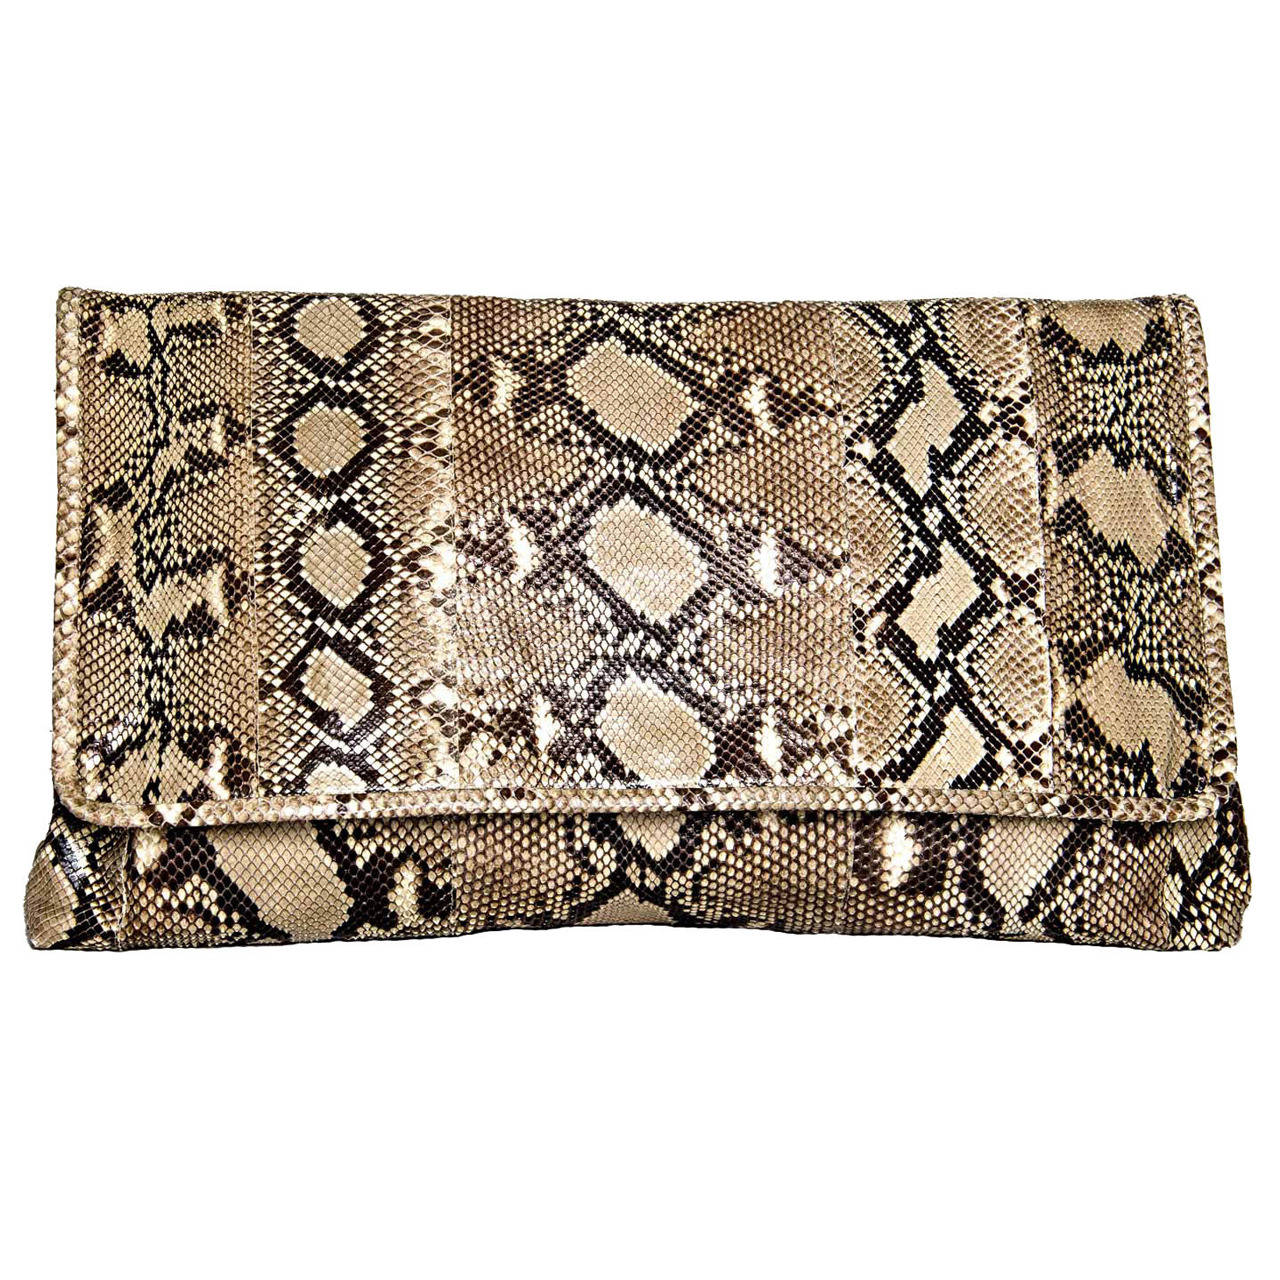 76b433e40391 Prada Bag Python Large Clutch For Sale at 1stdibs